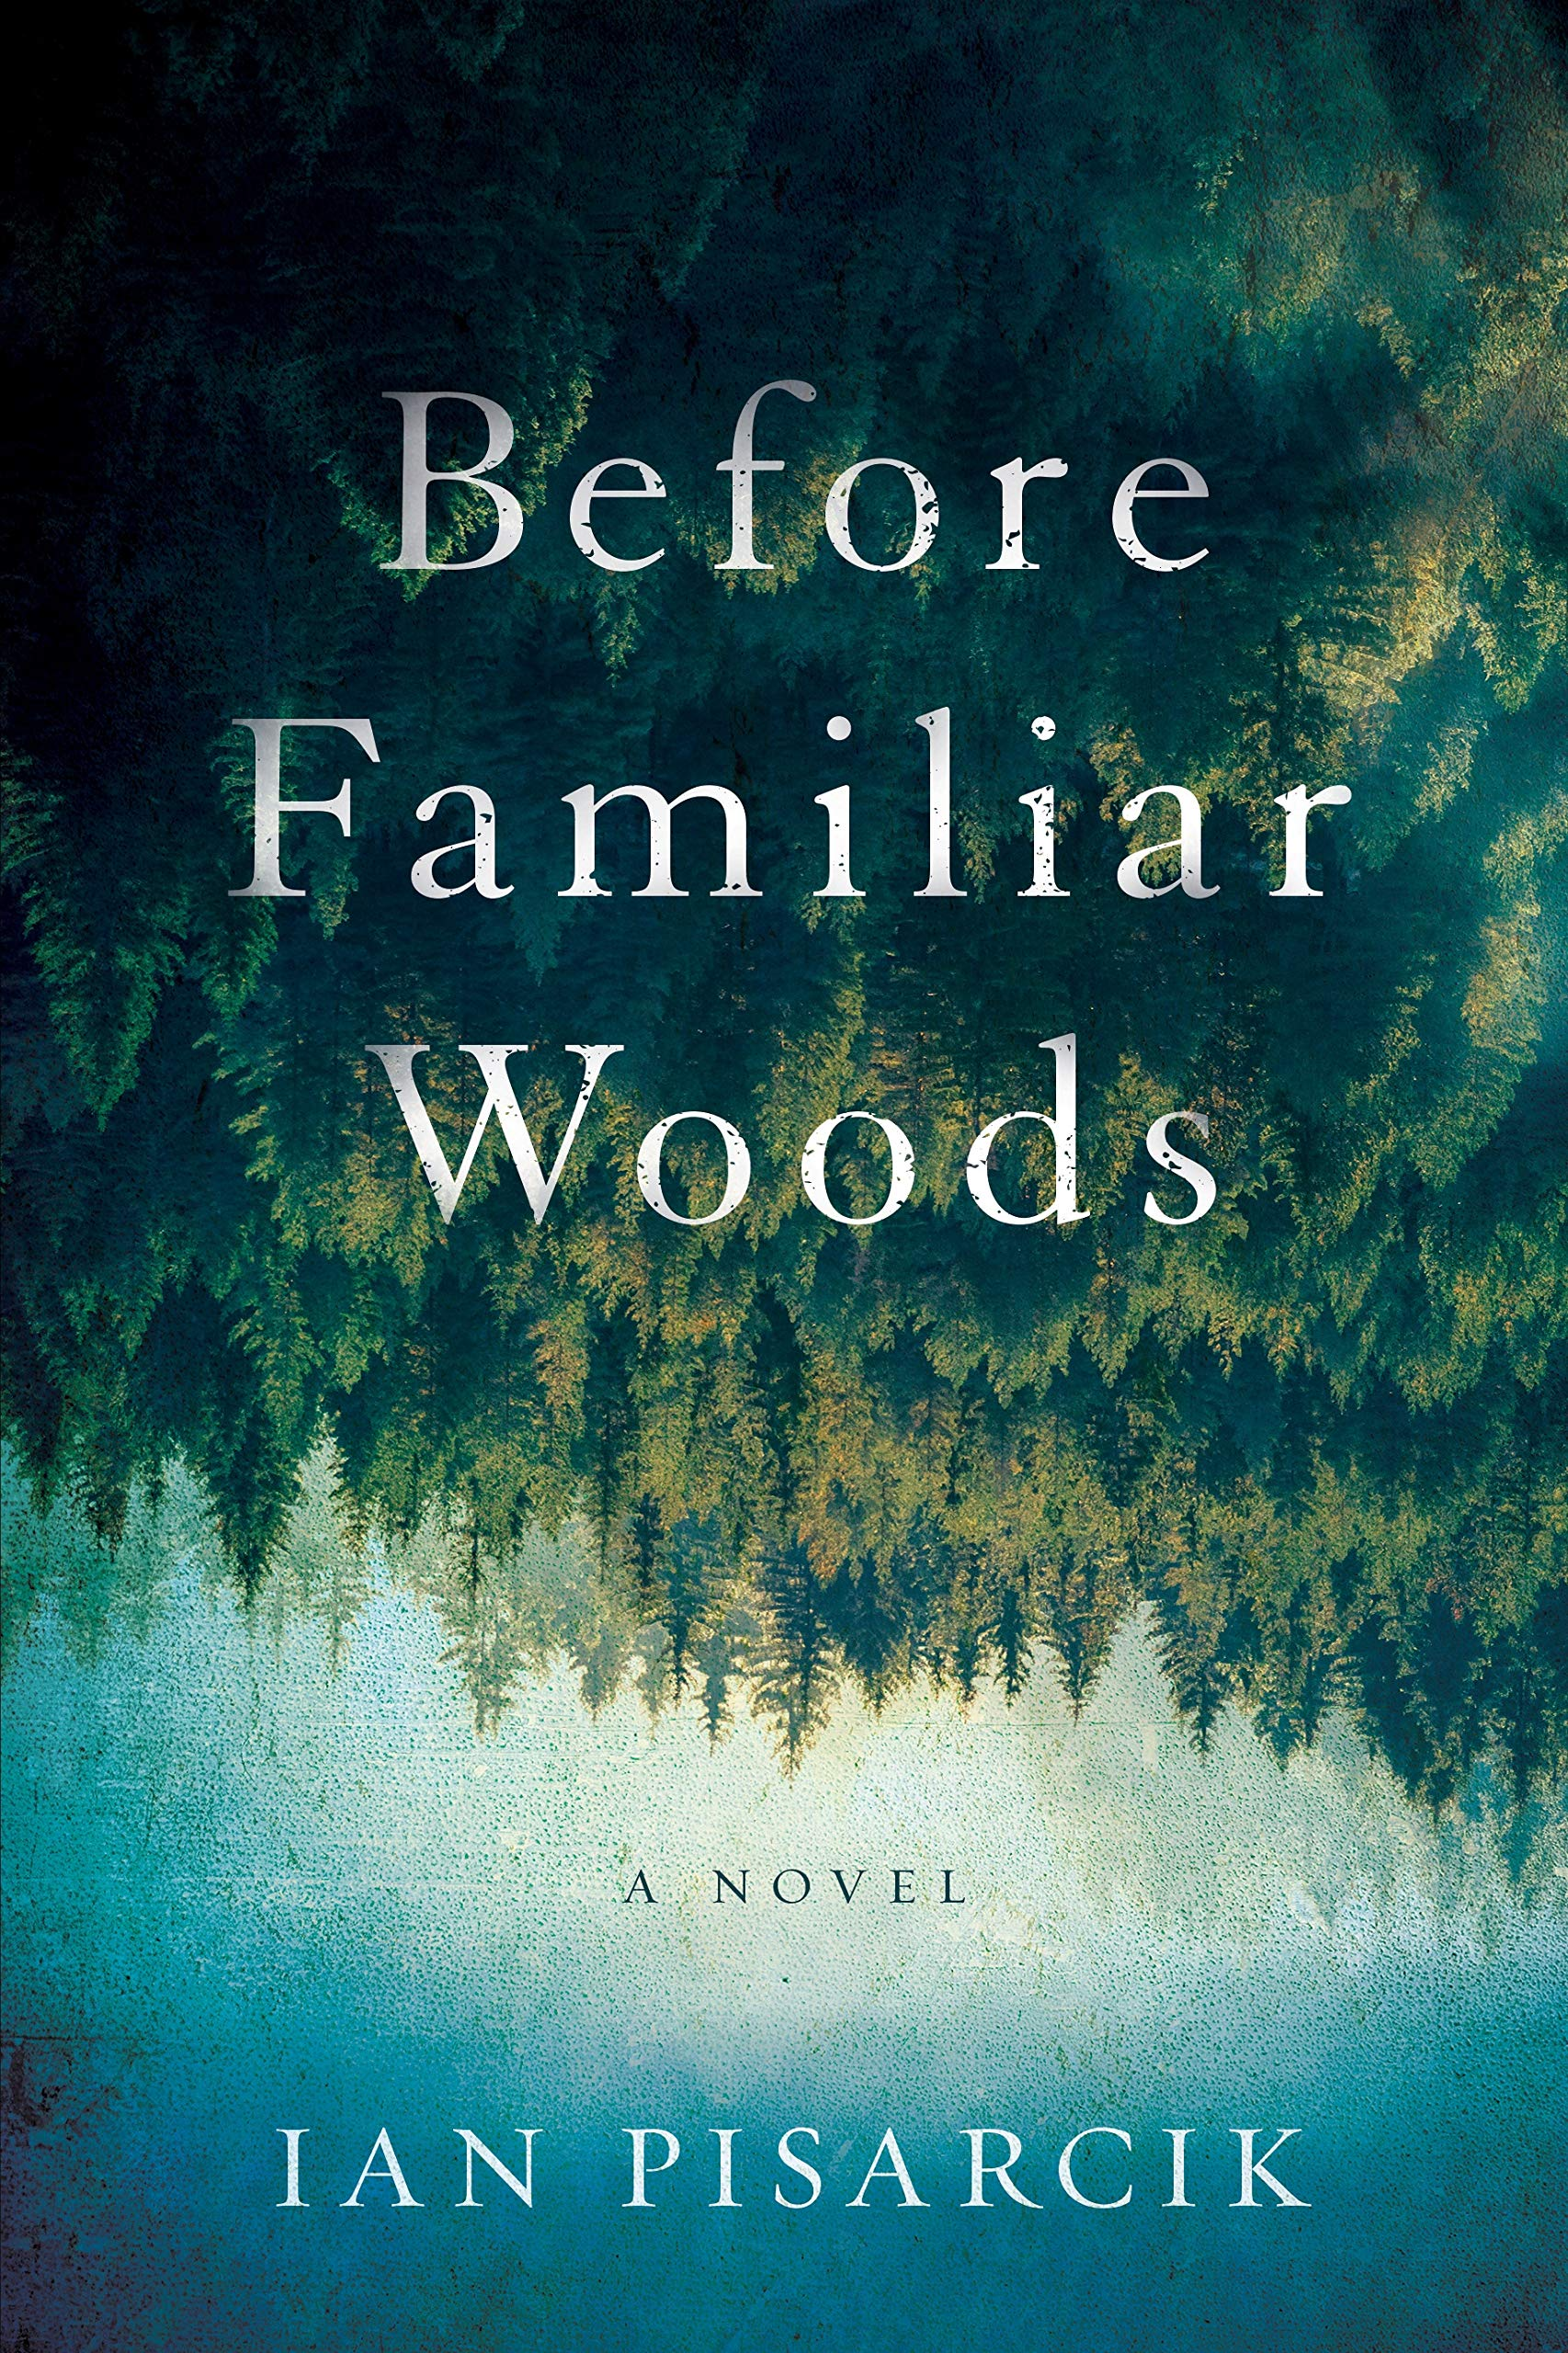 Before Familiar Woods: A Novel